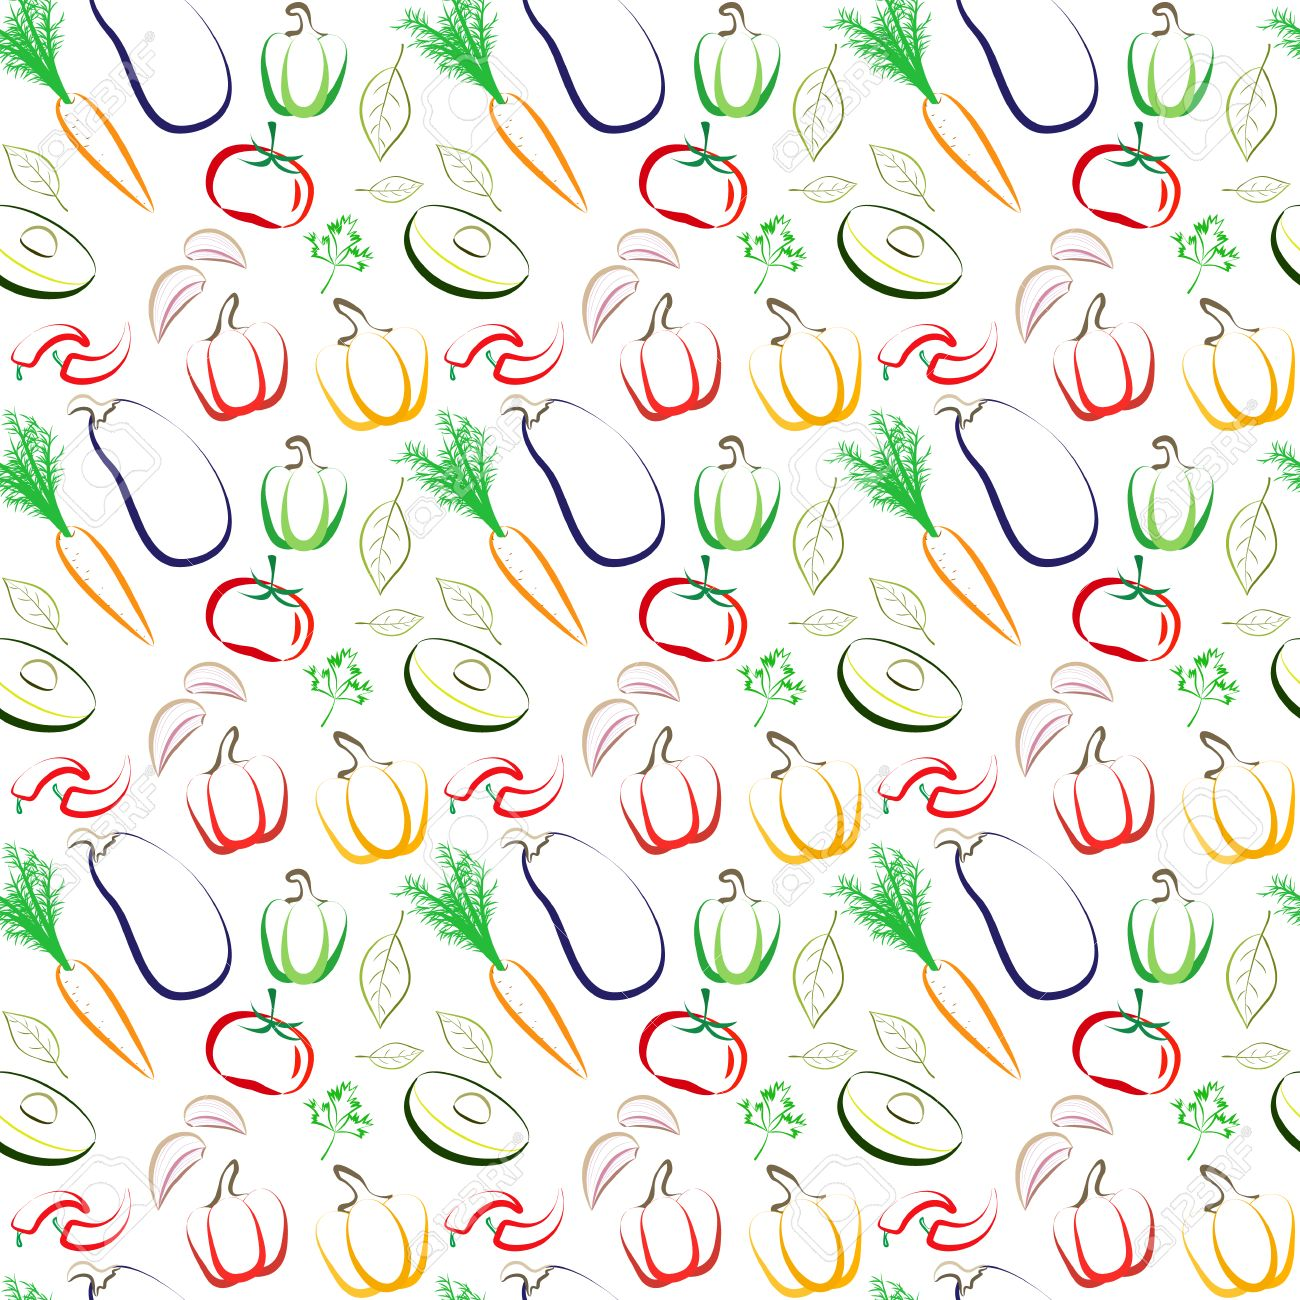 Scrapbook paper cooking - Unique Modern Line Drawing Background For Web Wallpapers Textile Wrapping Paper And Digital Scrapbook Cooking Healthy Eating Theme